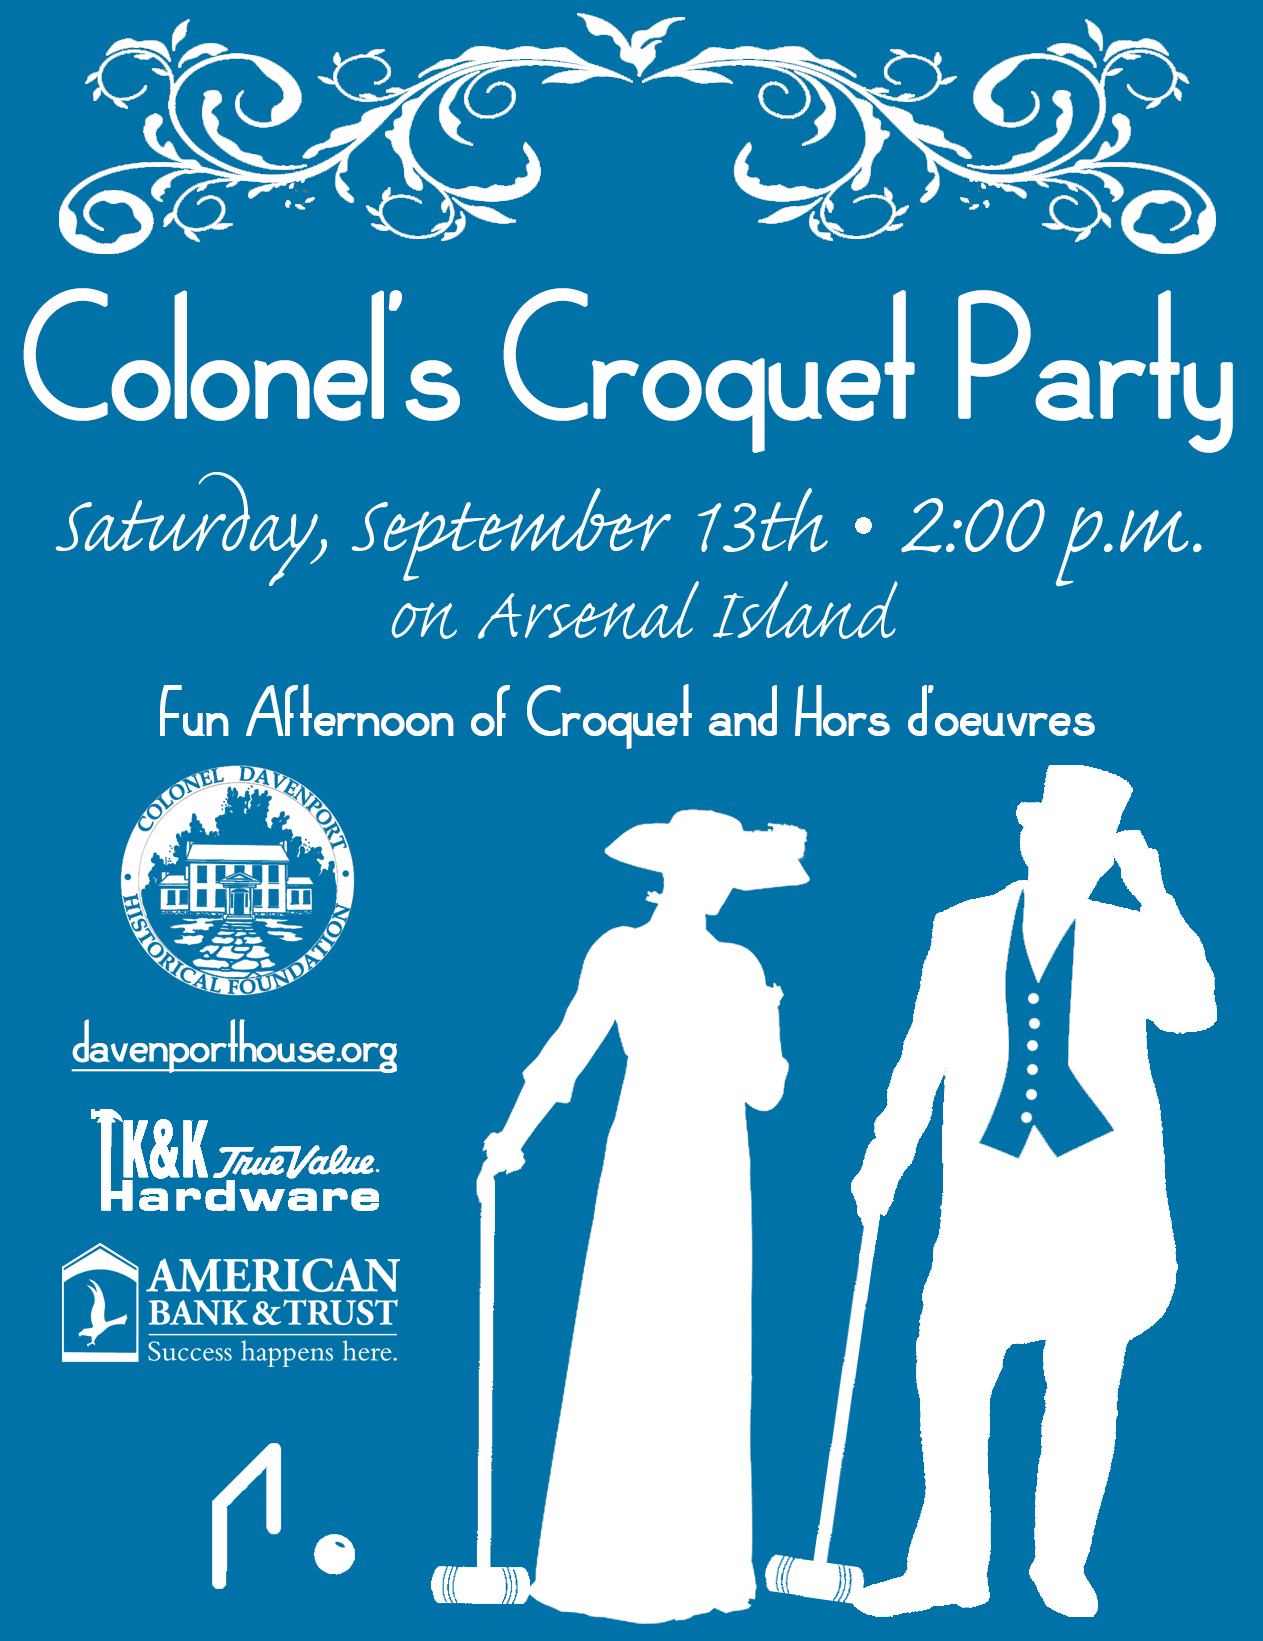 Eventbrite - NEW DATE Colonel's Croquet Party on Arsenal Island 2014